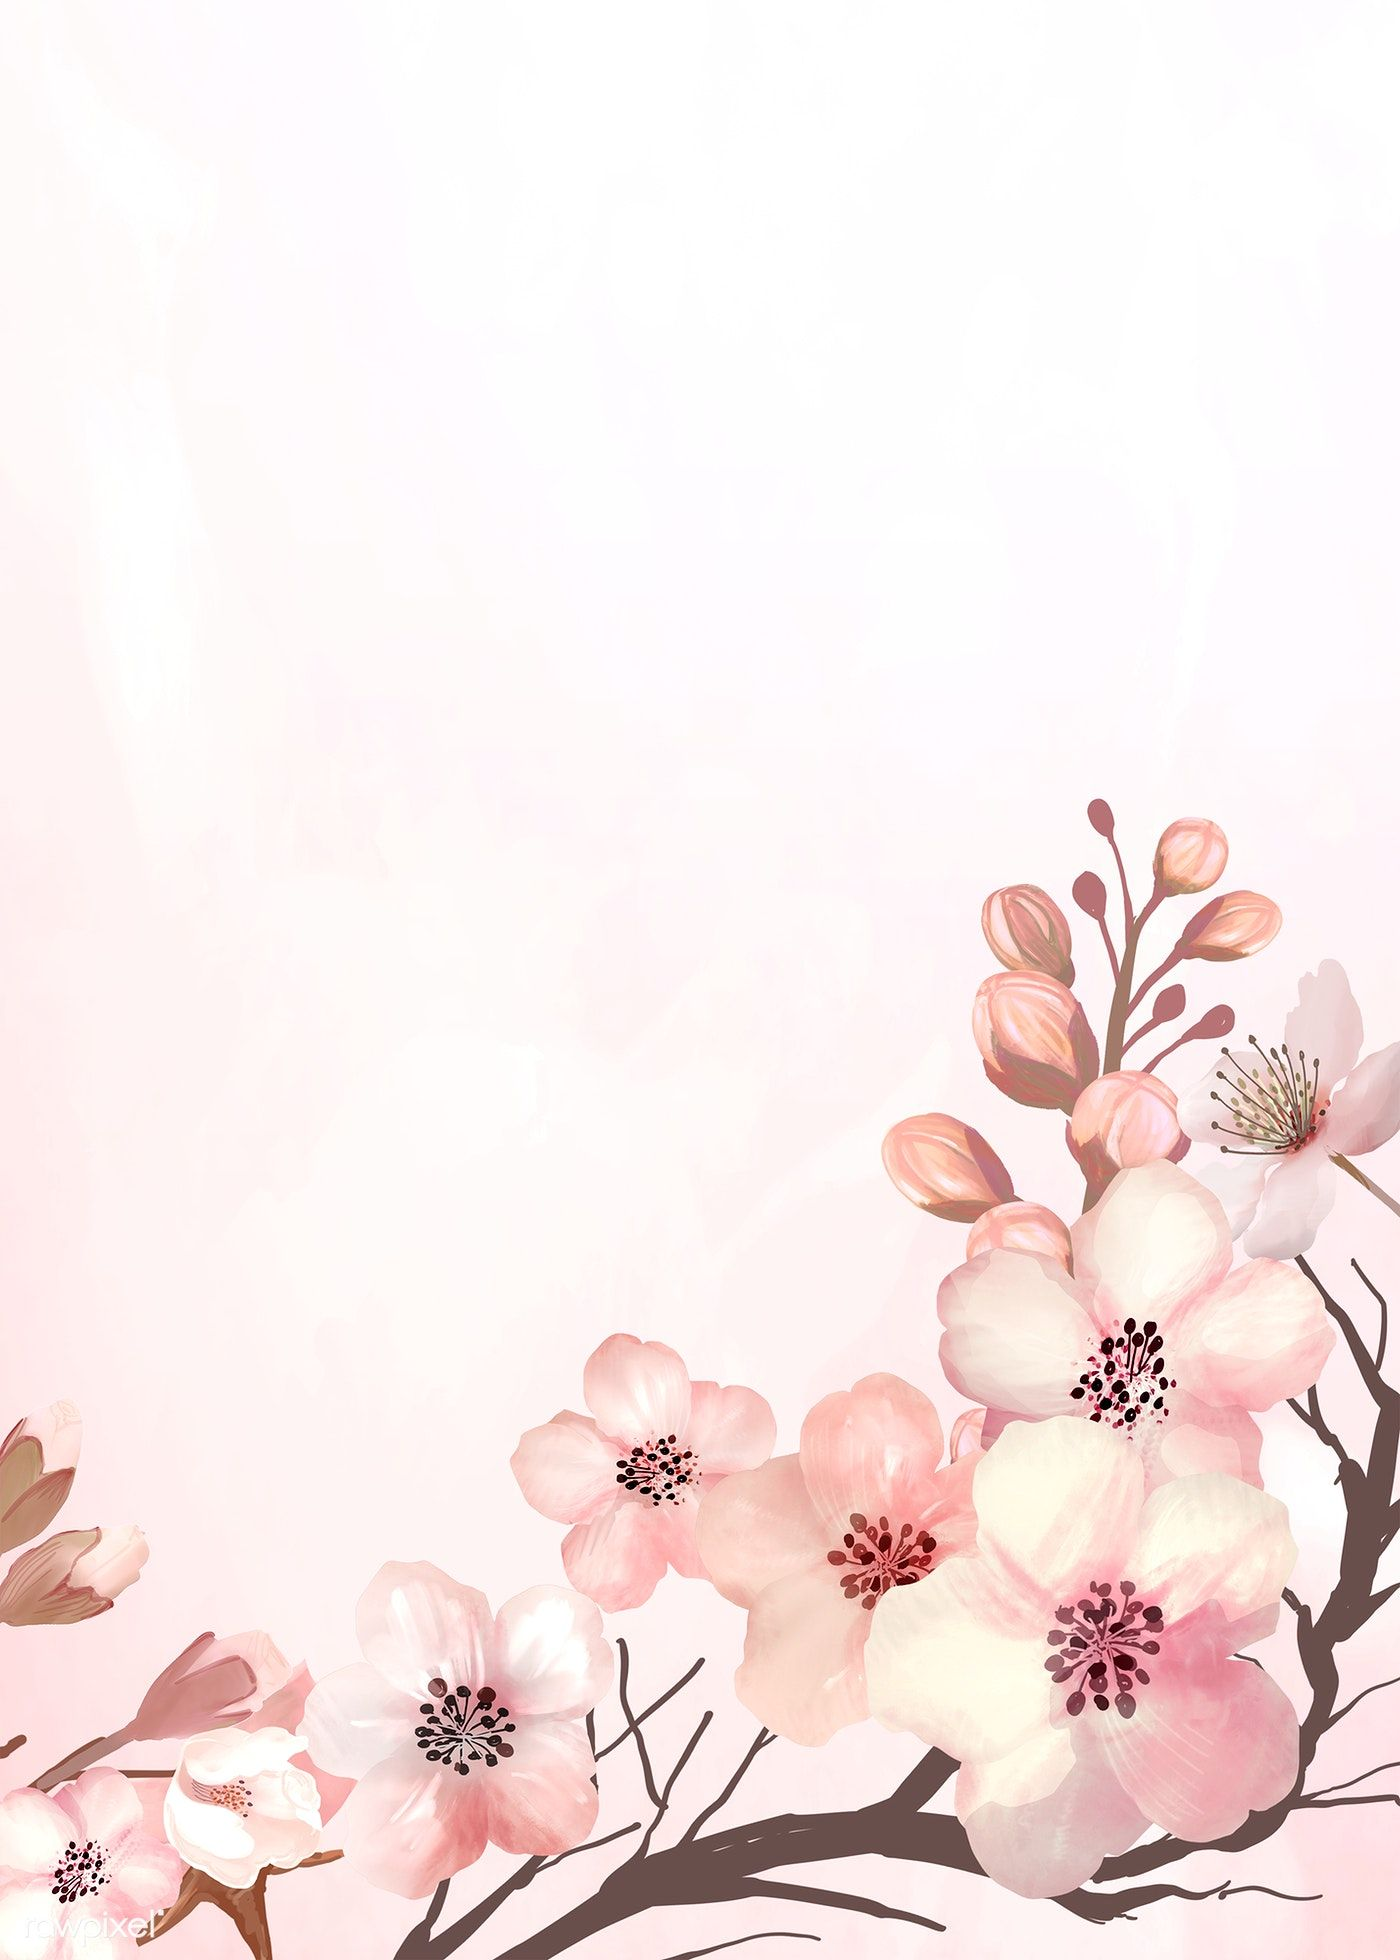 Download Premium Illustration Of Hand Drawn Cherry Blossoms On A Pink Cherry Blossom Background Pink Background Flower Illustration